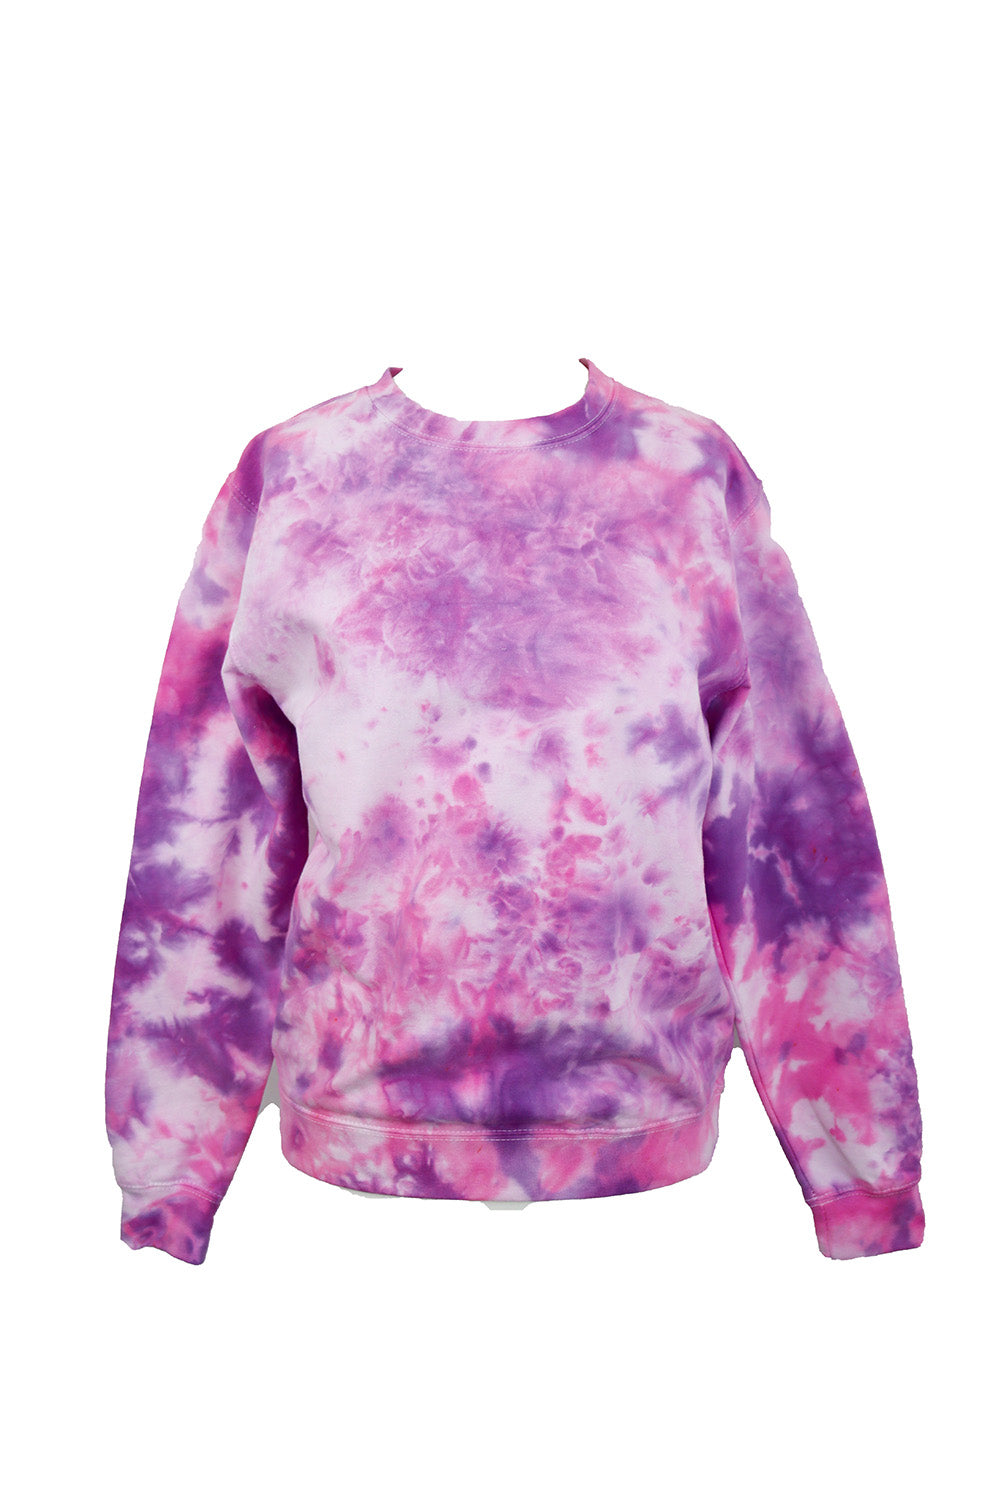 TO DYE FOR FIESTA PINK & VIOLET SWEATSHIRT